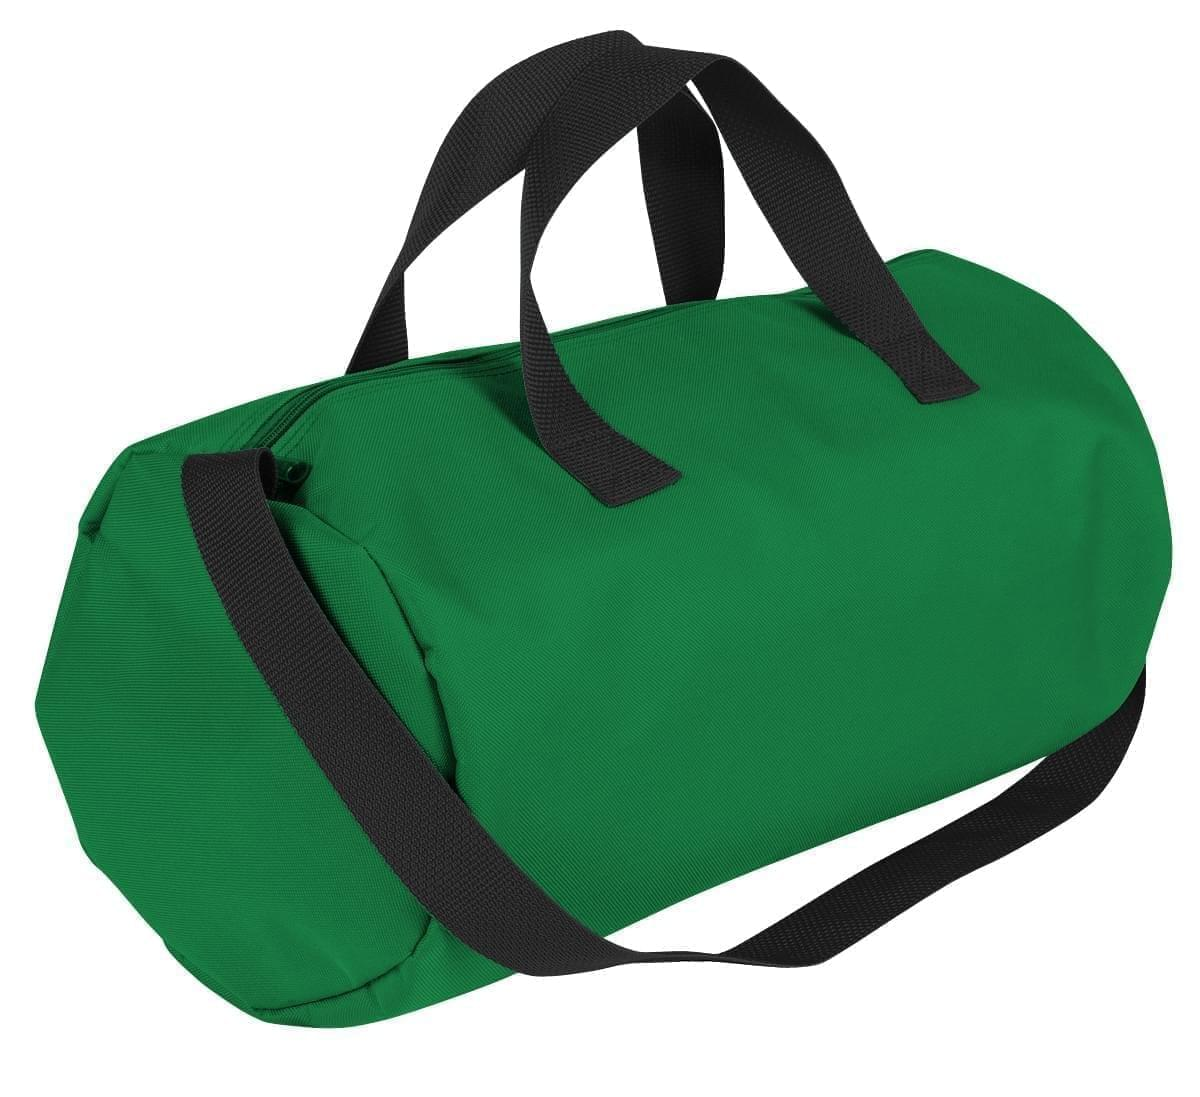 USA Made Nylon Poly Gym Roll Bags, Kelly Green-Black, ROCX31AATR